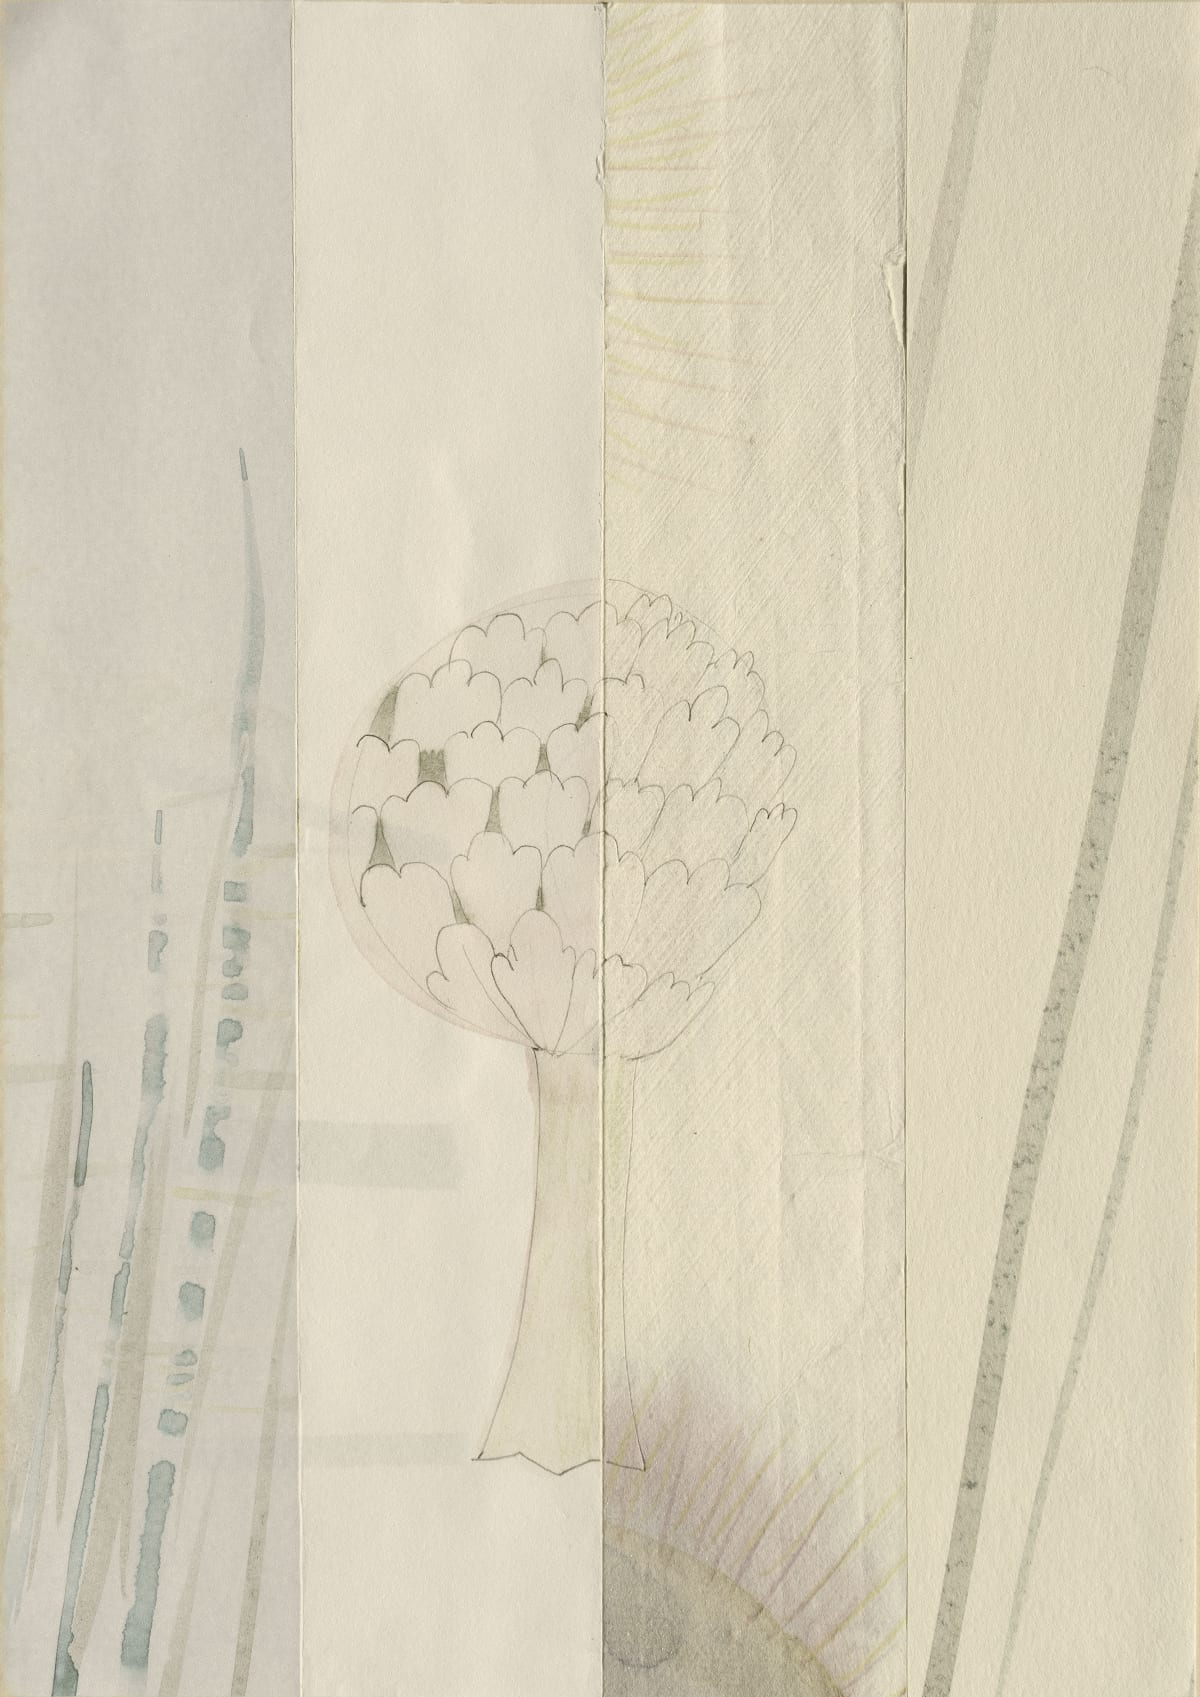 Mireille Gros, Seasons: Fictional Plant Diversity, 2020, watercolour and pencil on paper